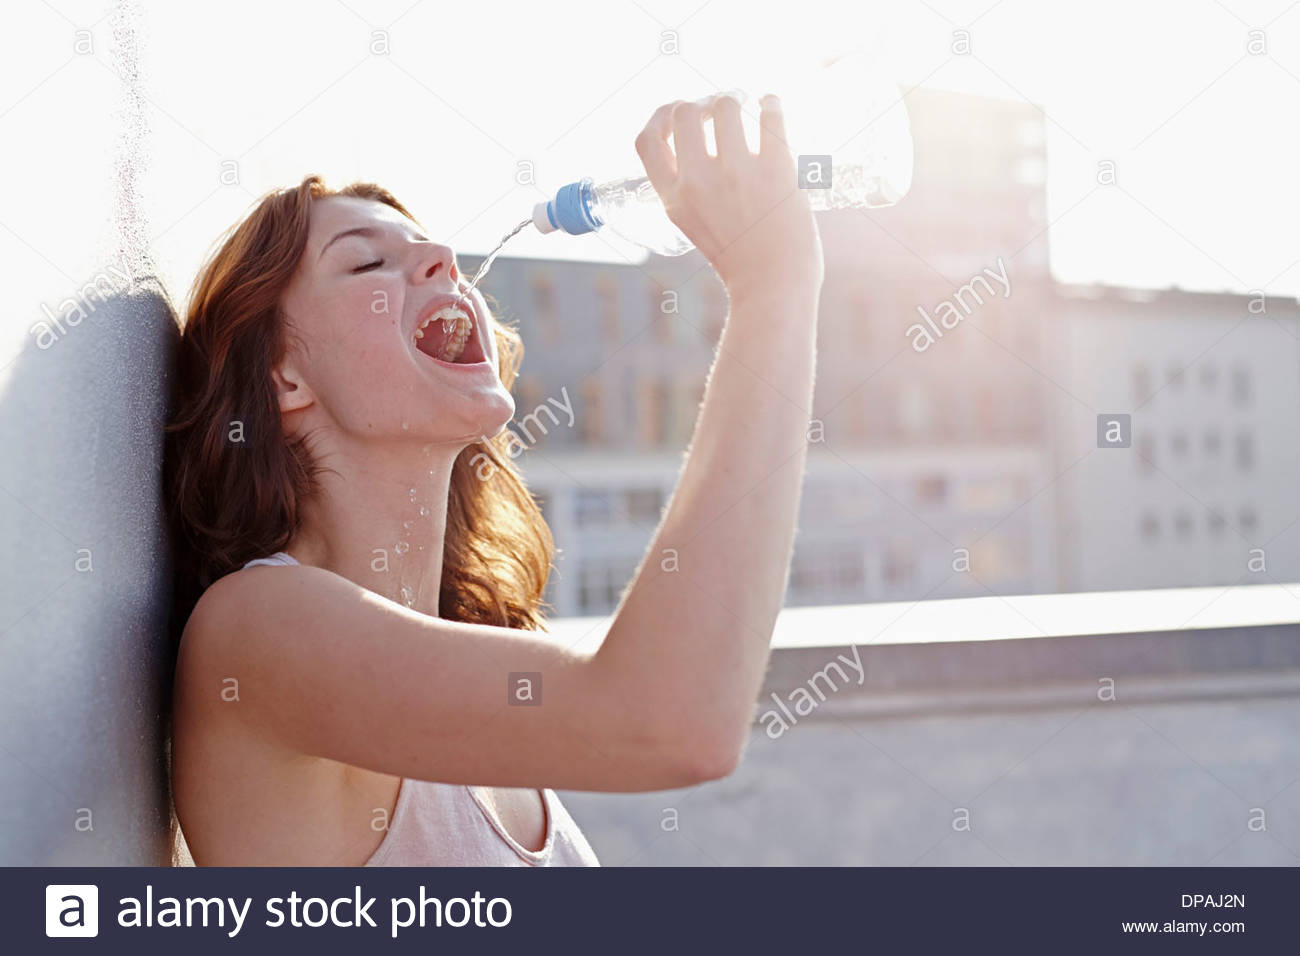 Portrait of young woman drinking mineral water - Stock Image